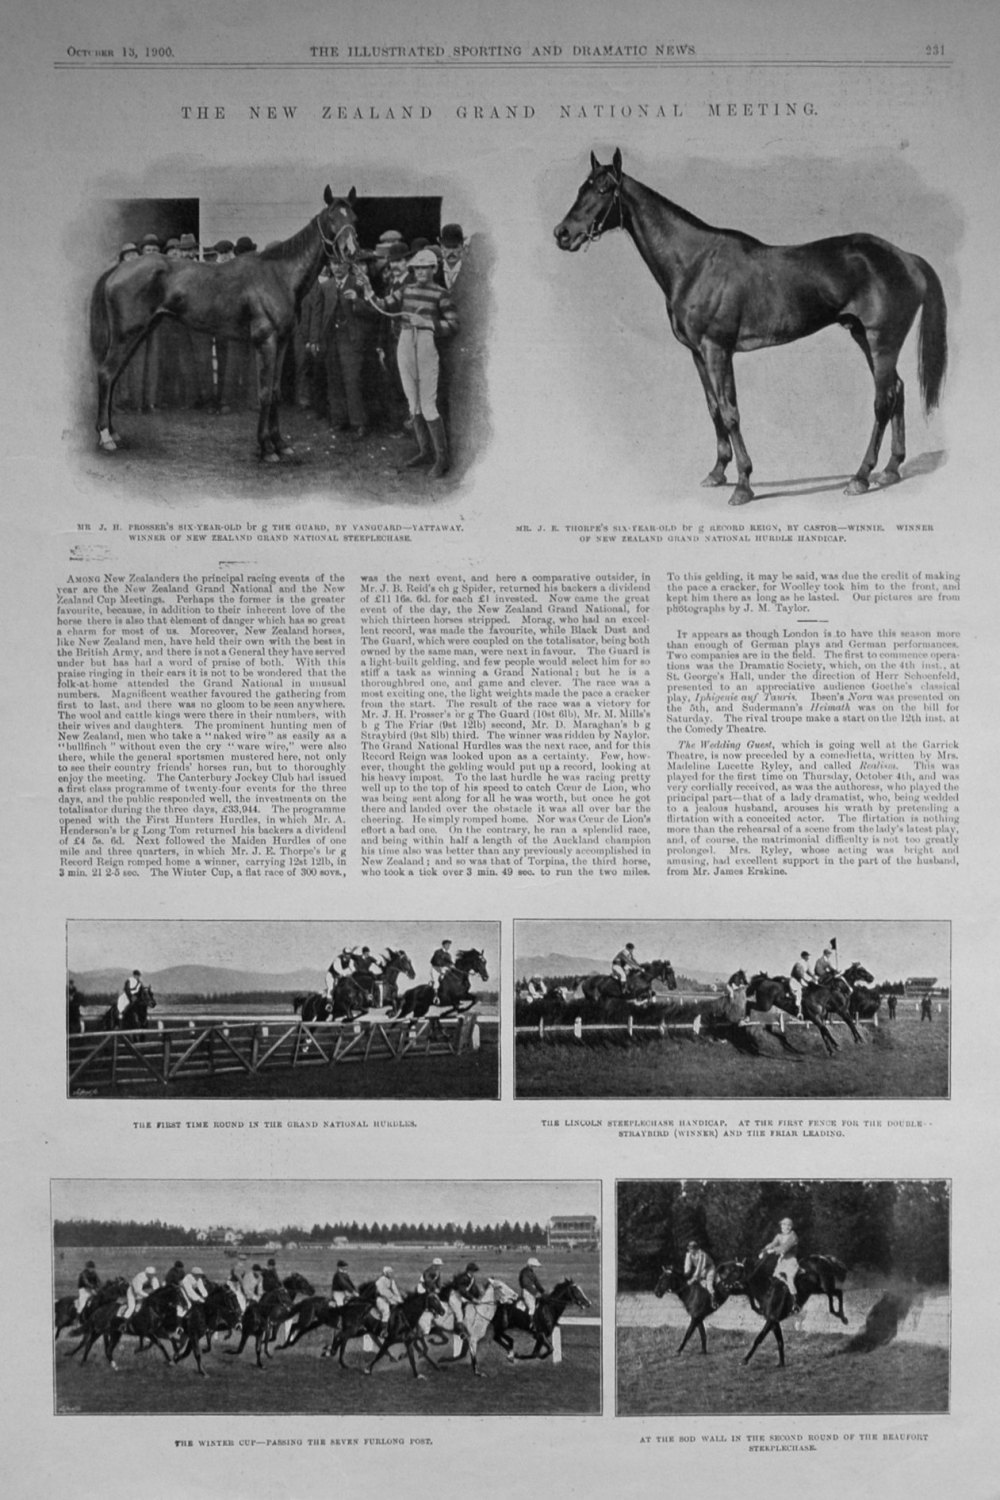 The New Zealand Grand National Meeting. 1900